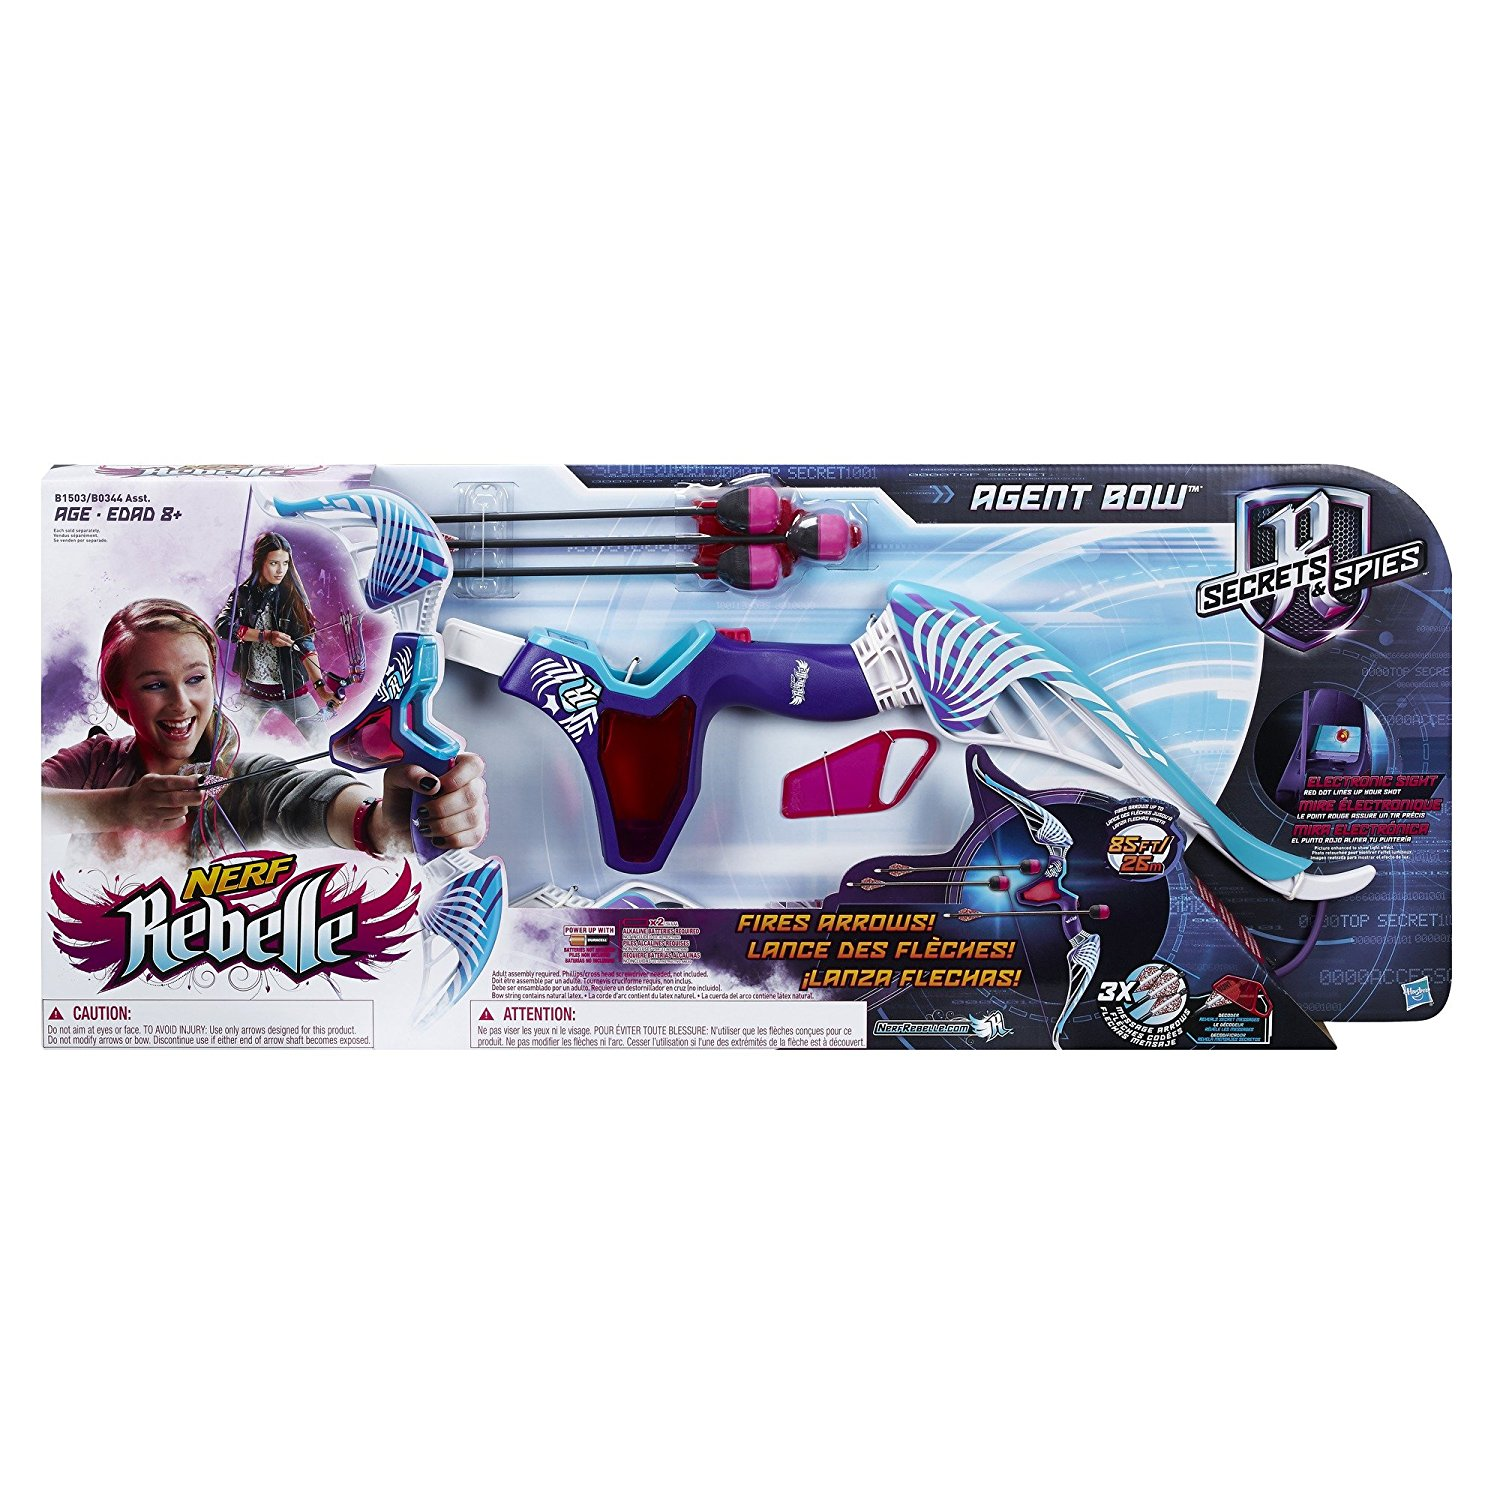 Nerf Rebelle Agent Bow Purple and Teal by Hasbro